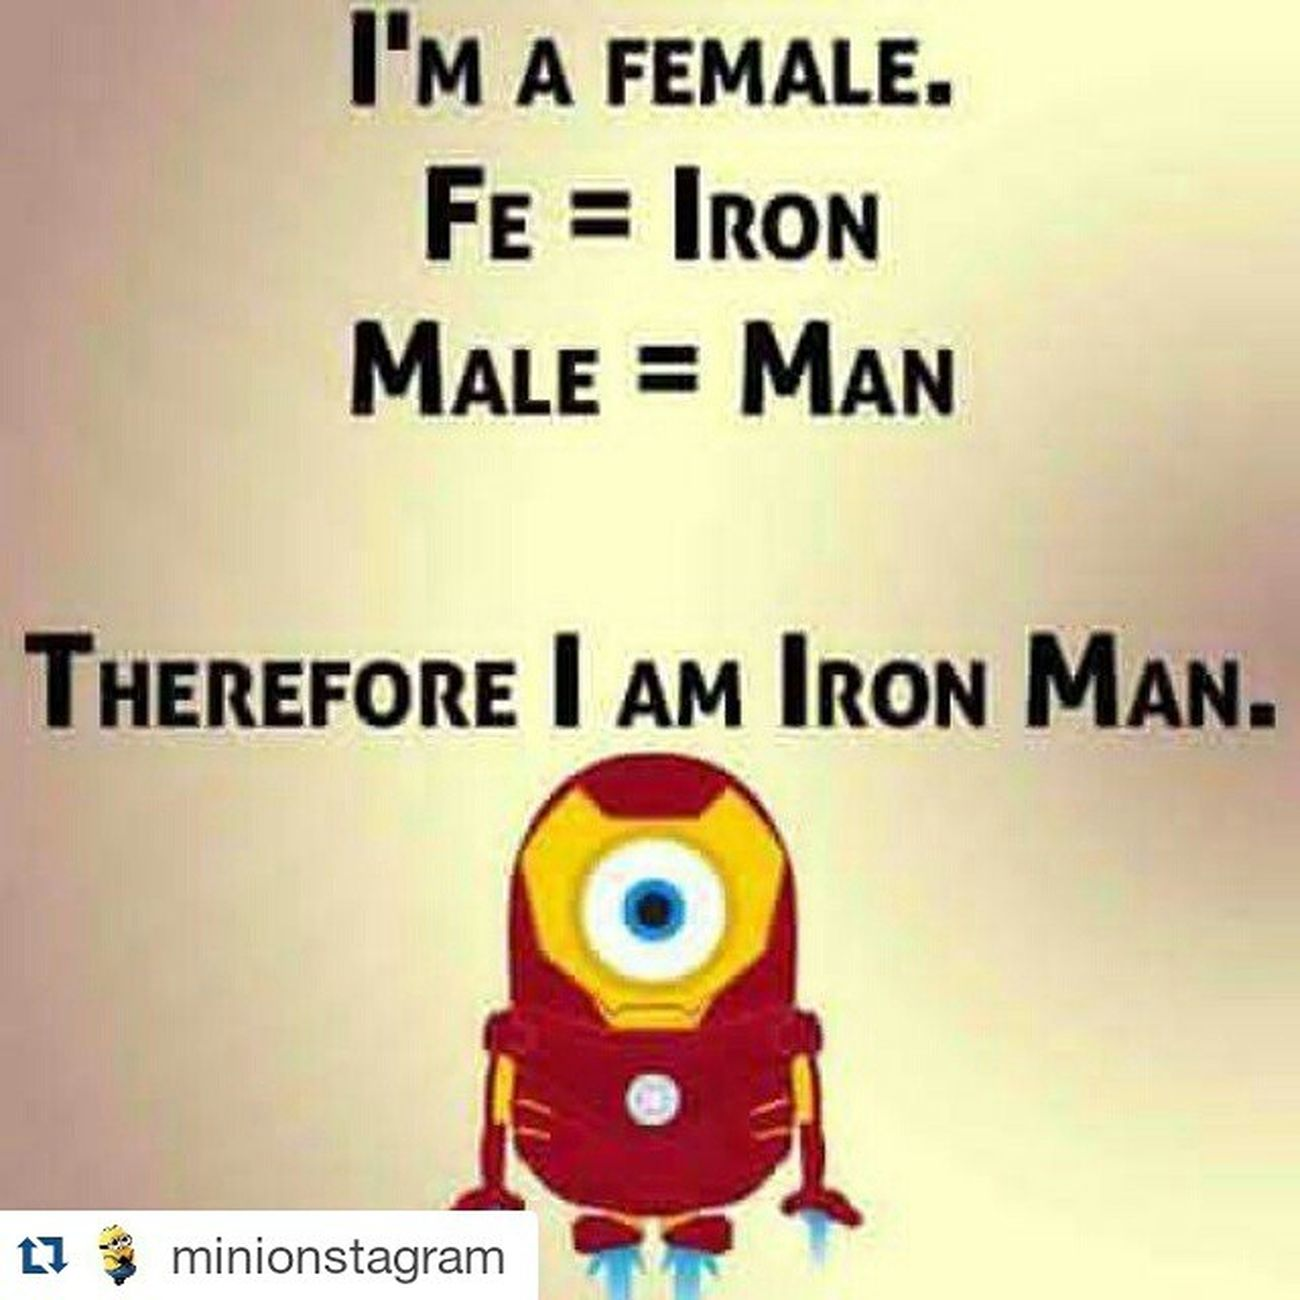 Repost @minionstagram ・・・ Minions Minionquote Minionstagram Oh yeahh don't mess with me 🙅🙅